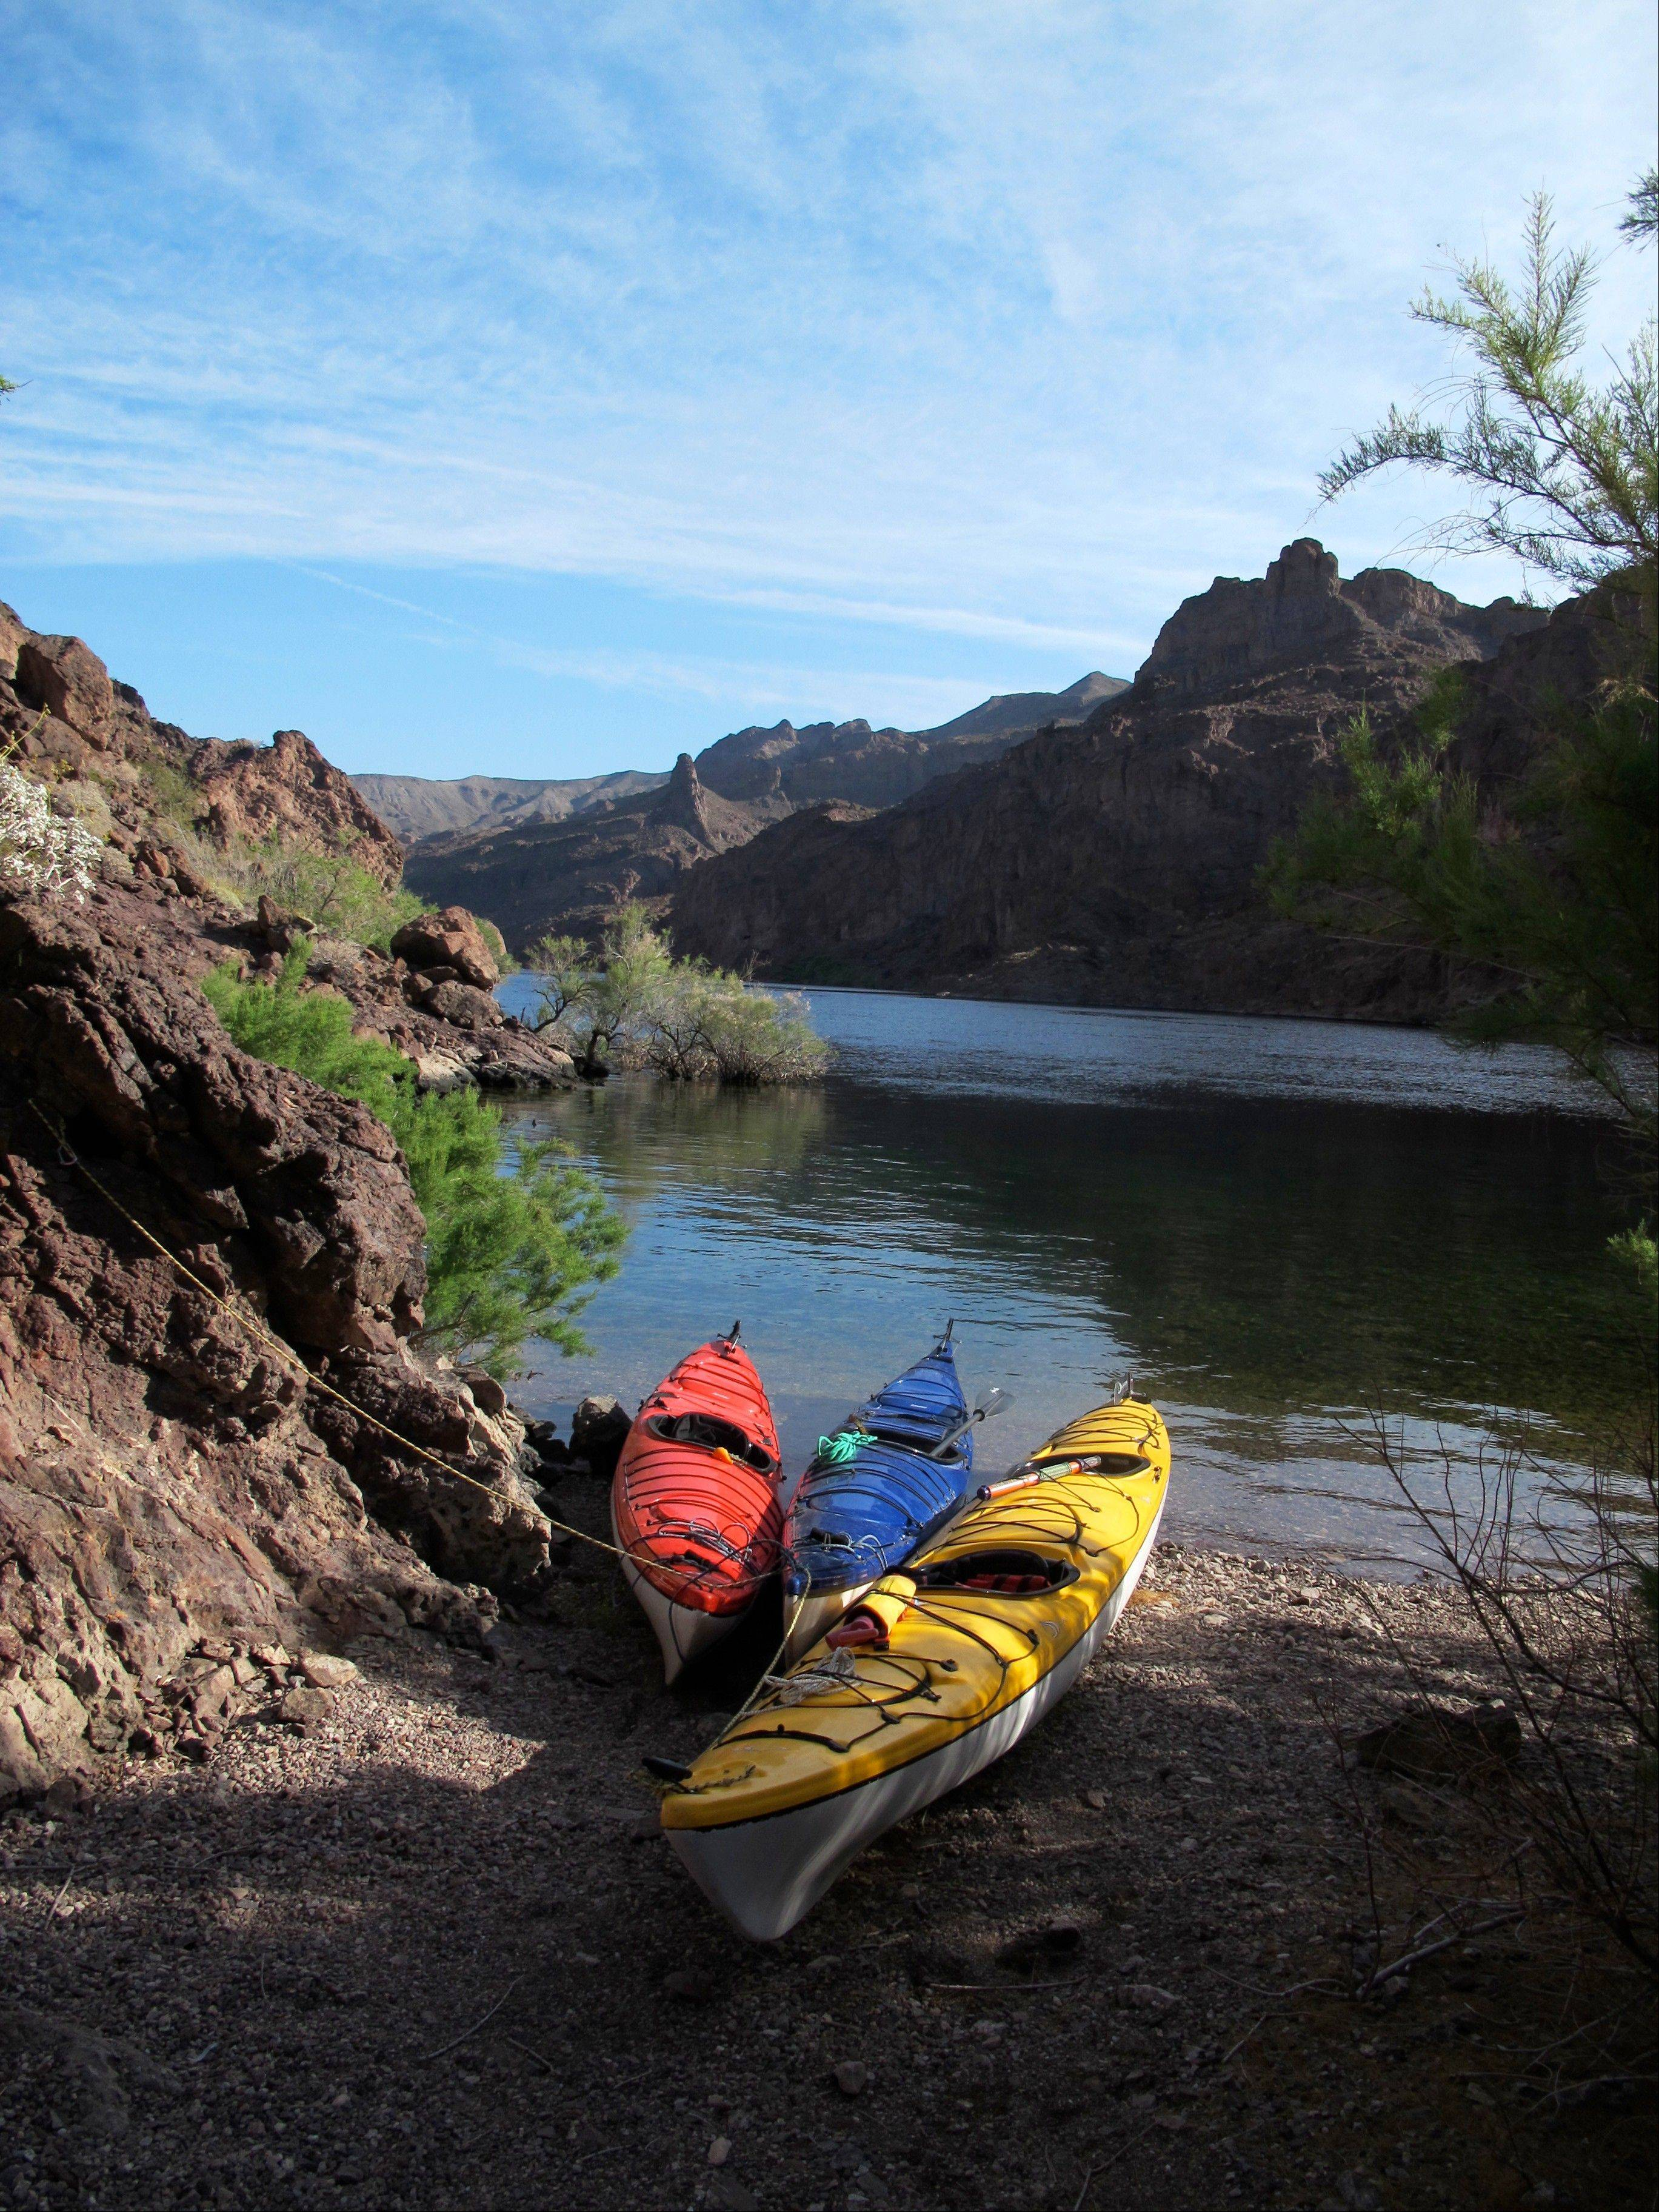 Kayaks pulled up on the shore of the Colorado River in Nevada. The put-in area is near the Hoover Dam, a federal security zone, so watercraft must be transported by an authorized livery service, whether you bring your own gear, rent boats or sign up for a guided trip.